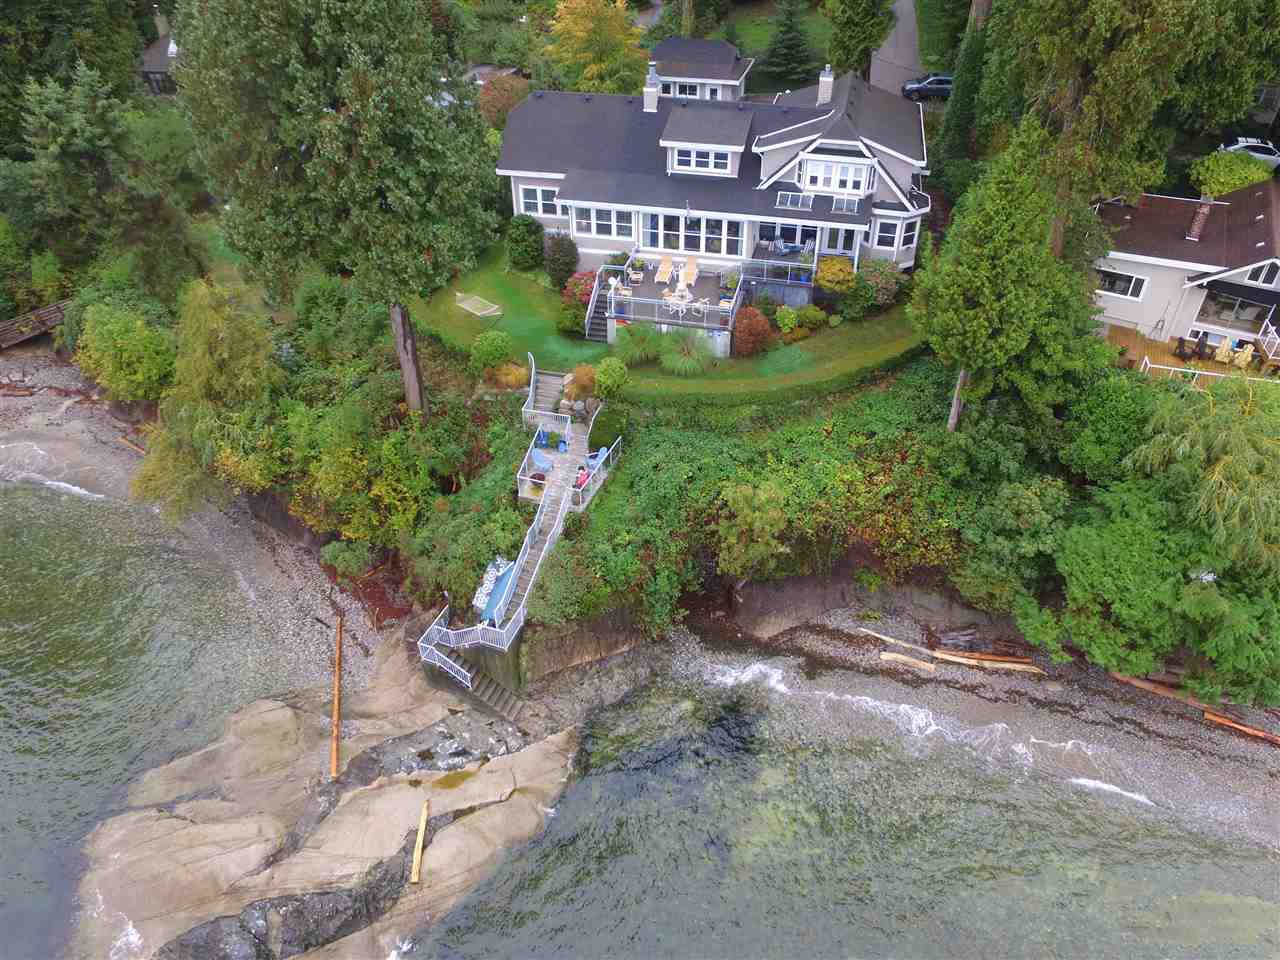 Main Photo: 3435 BEACH Avenue: Roberts Creek House for sale (Sunshine Coast)  : MLS®# R2414197